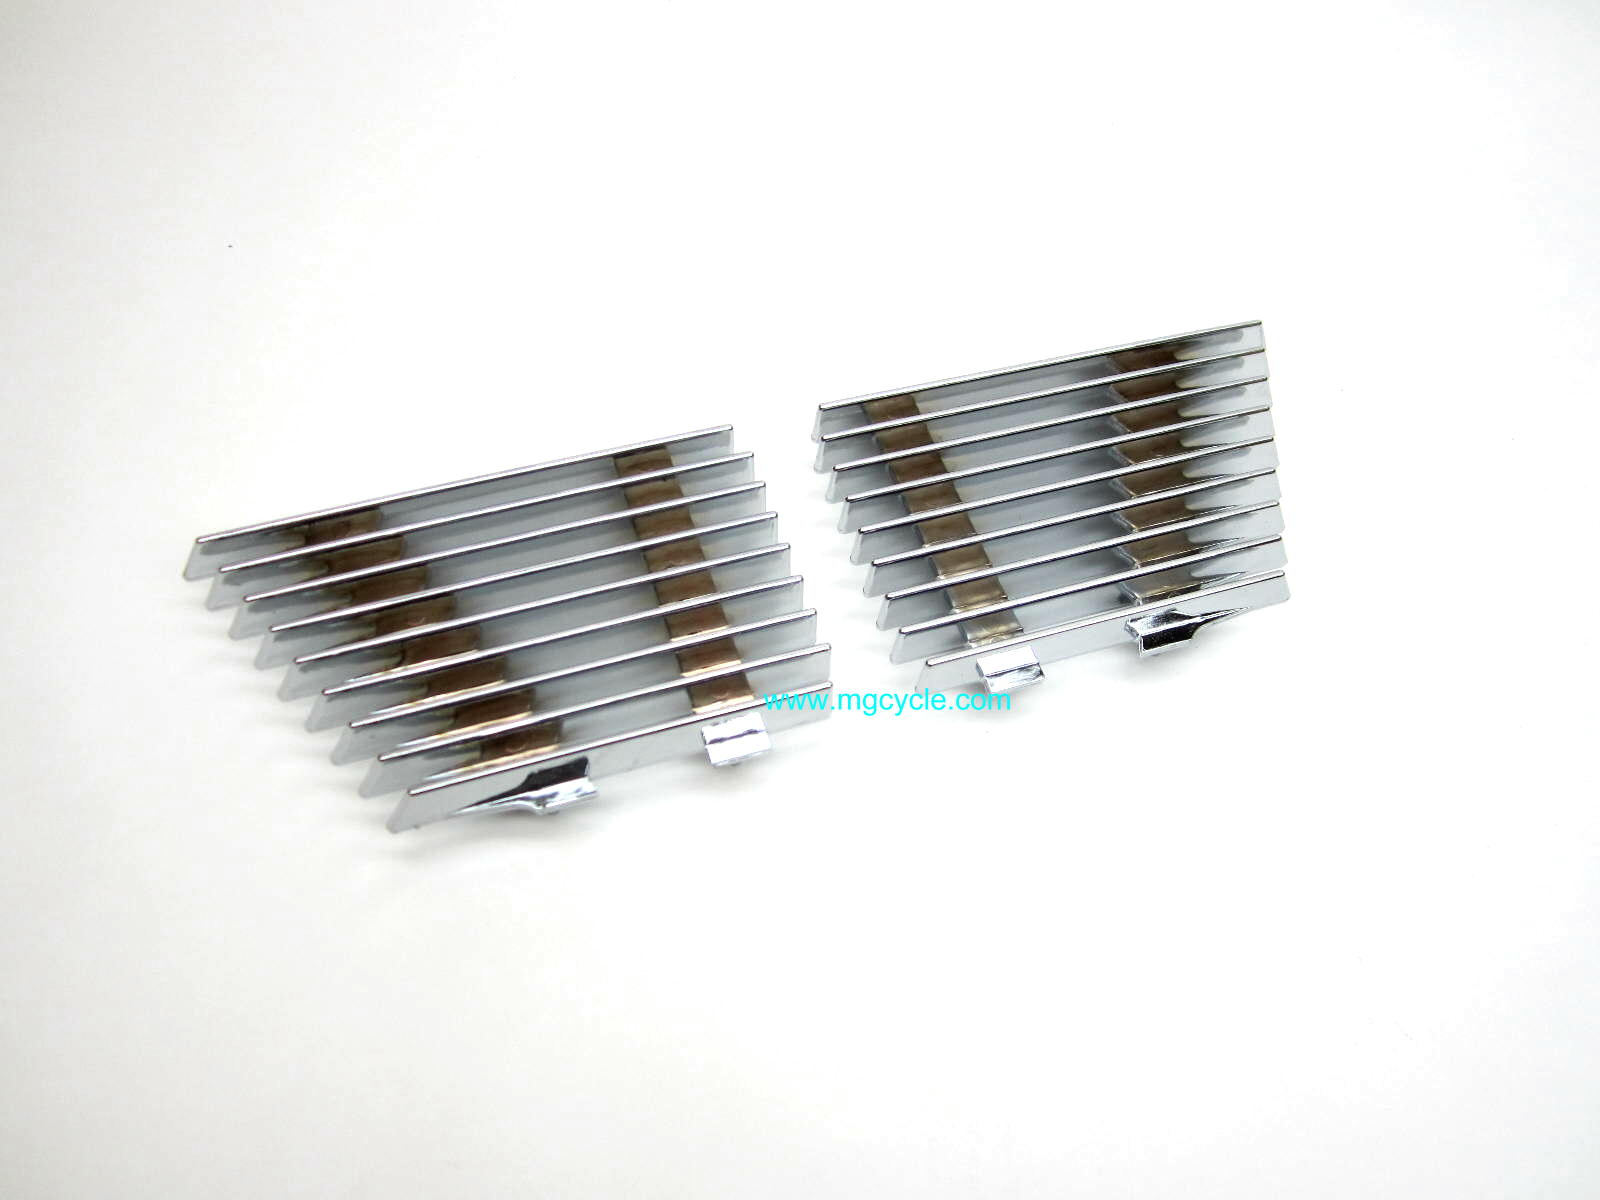 SALE: Chrome side cover grill set: Convert 850T3 1000SP V1000 G5